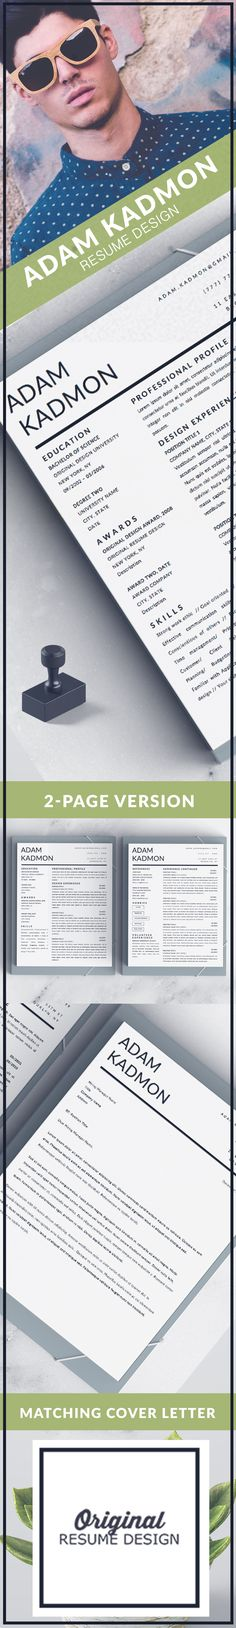 Modern resume template for Microsoft Word. The Adam Kadmon design features 1 and 2 page versions and a matching cover letter.